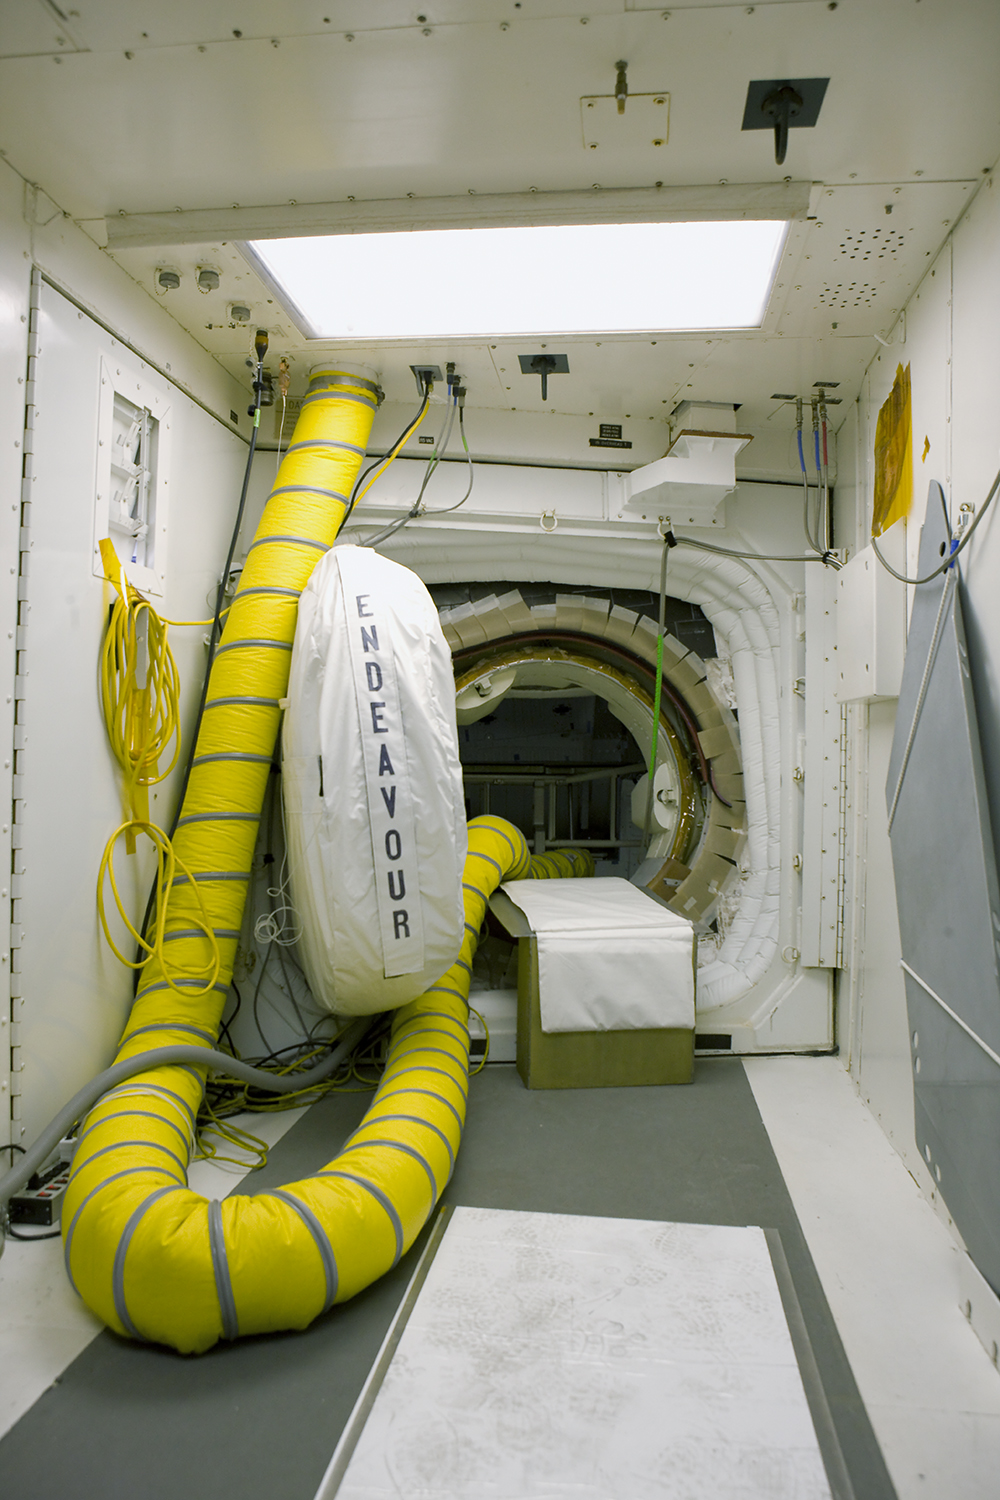 Space Shuttle Endeavour, White Room, Pad 39B